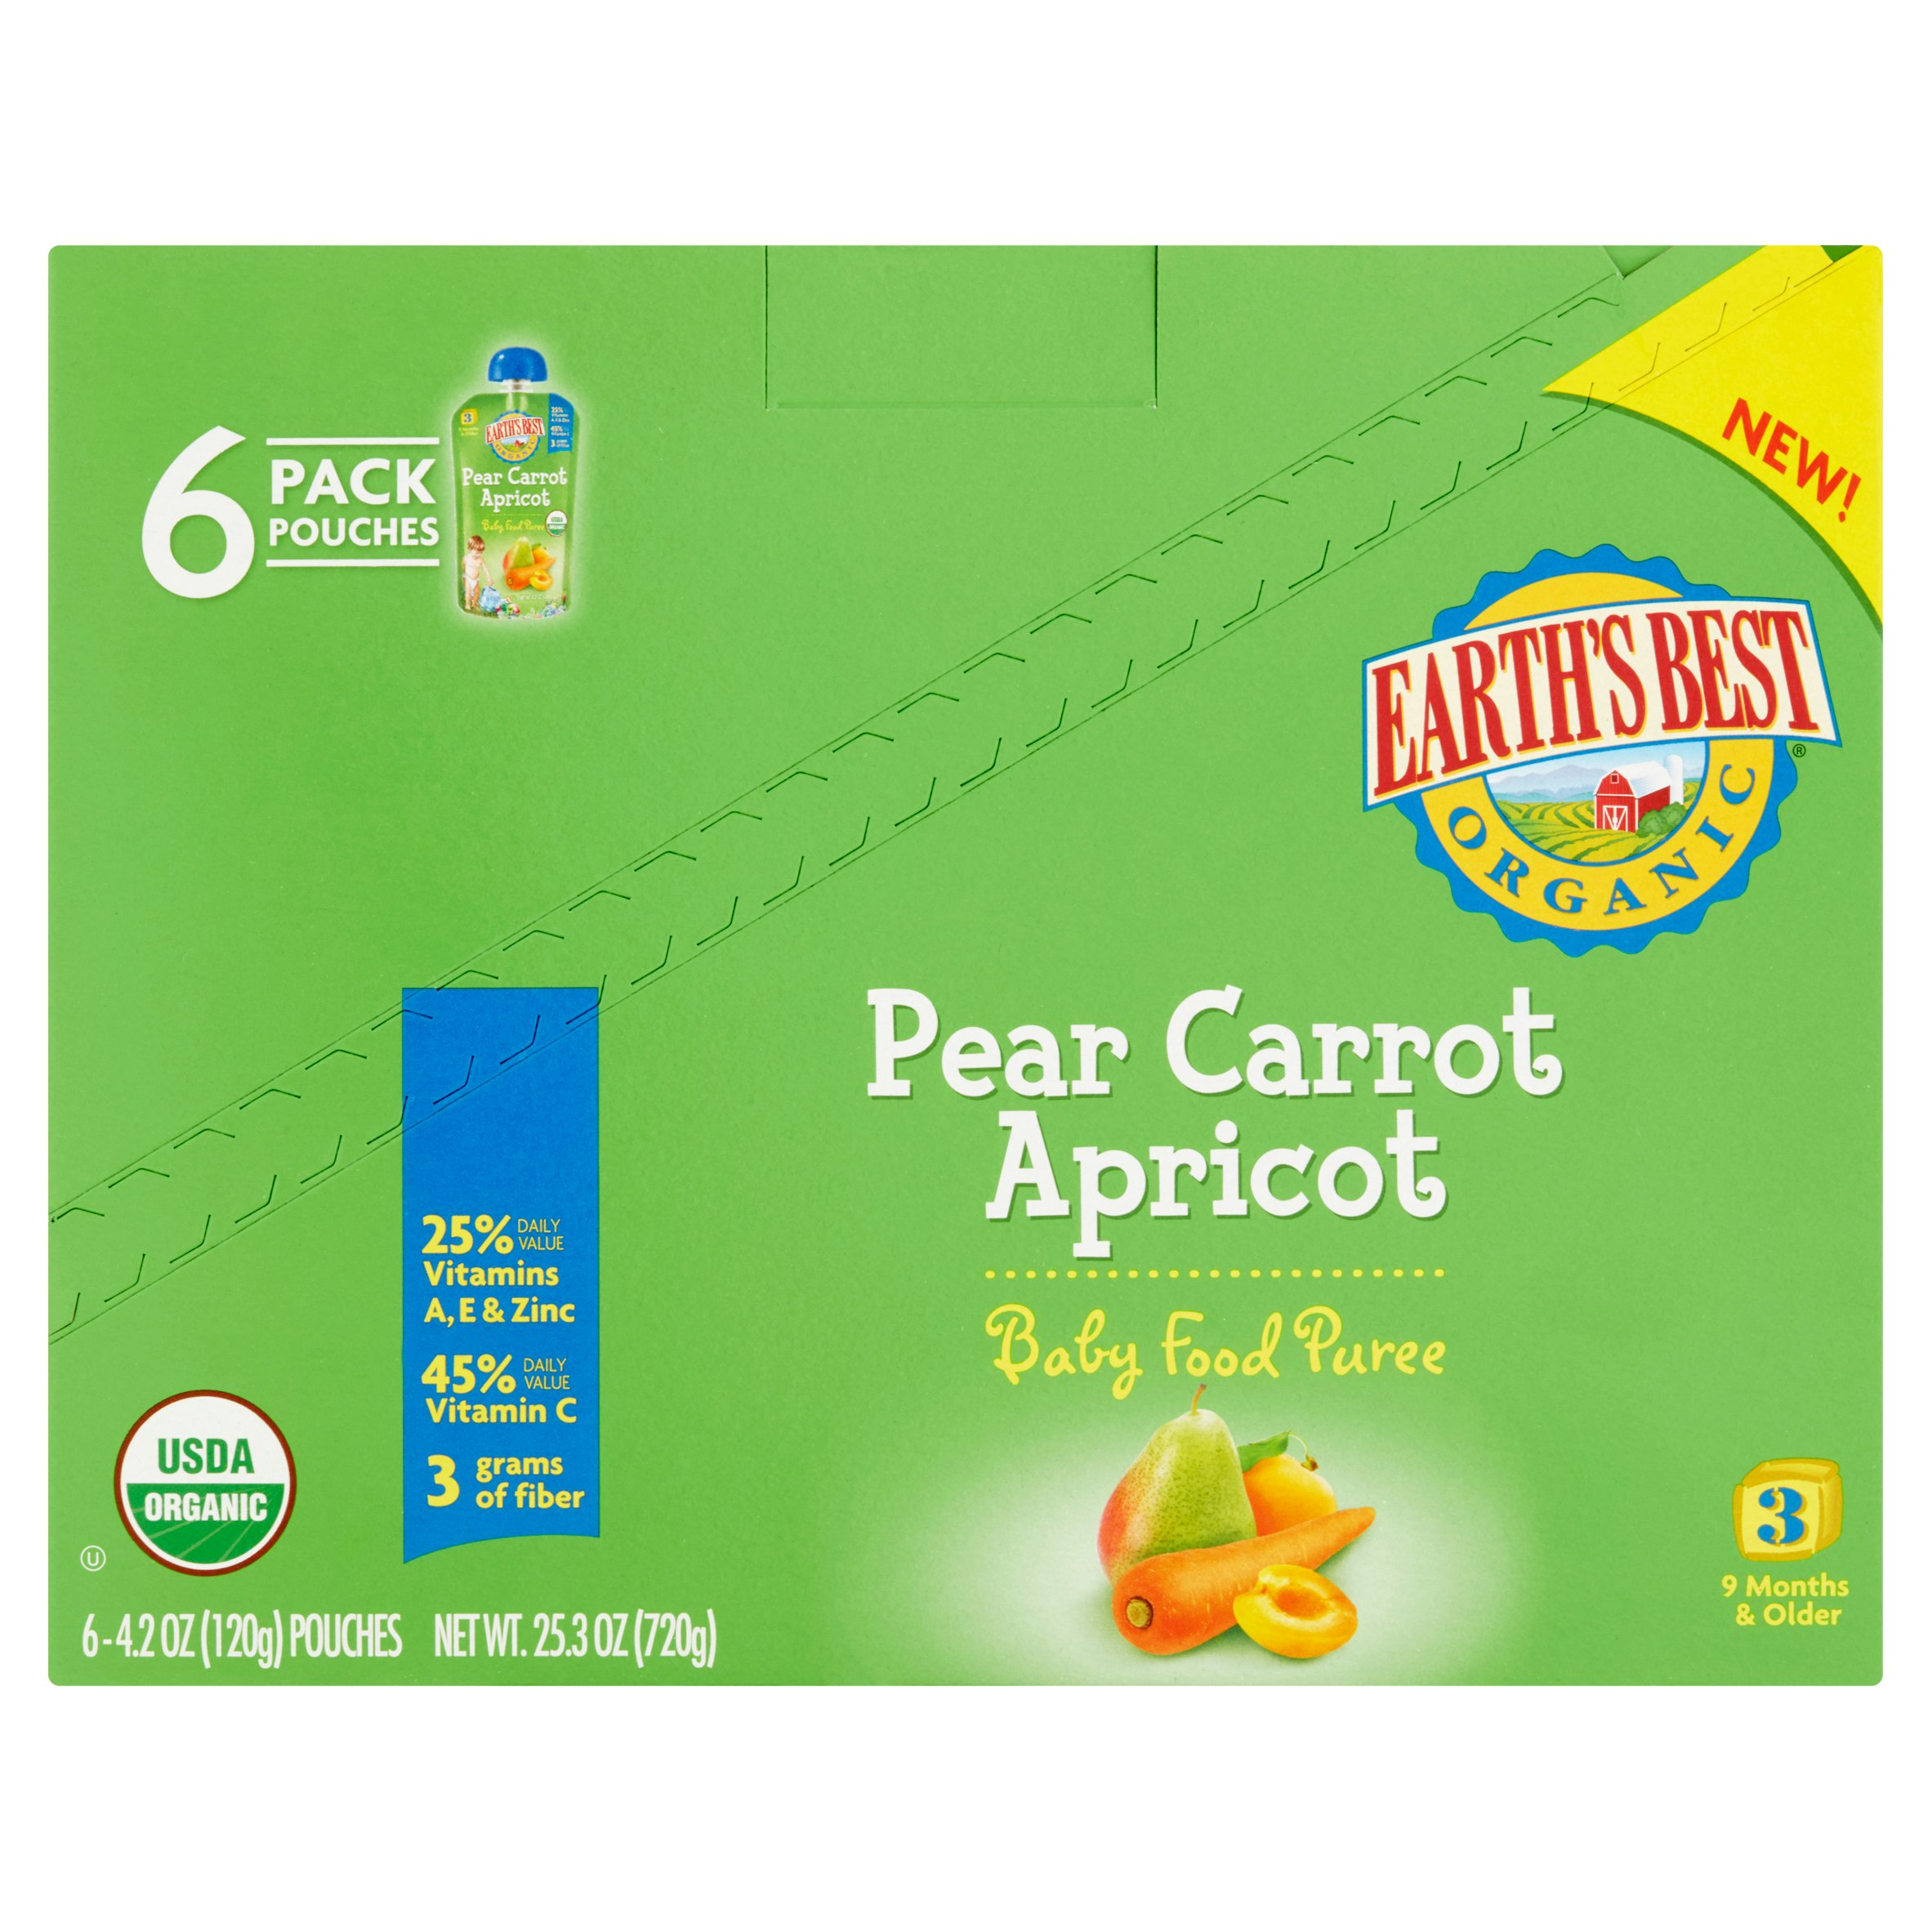 Earth's Best Organic Baby Food Pear Carrot Apricot Puree 3 9 Months & Older, 4.2 oz, 6 Pack